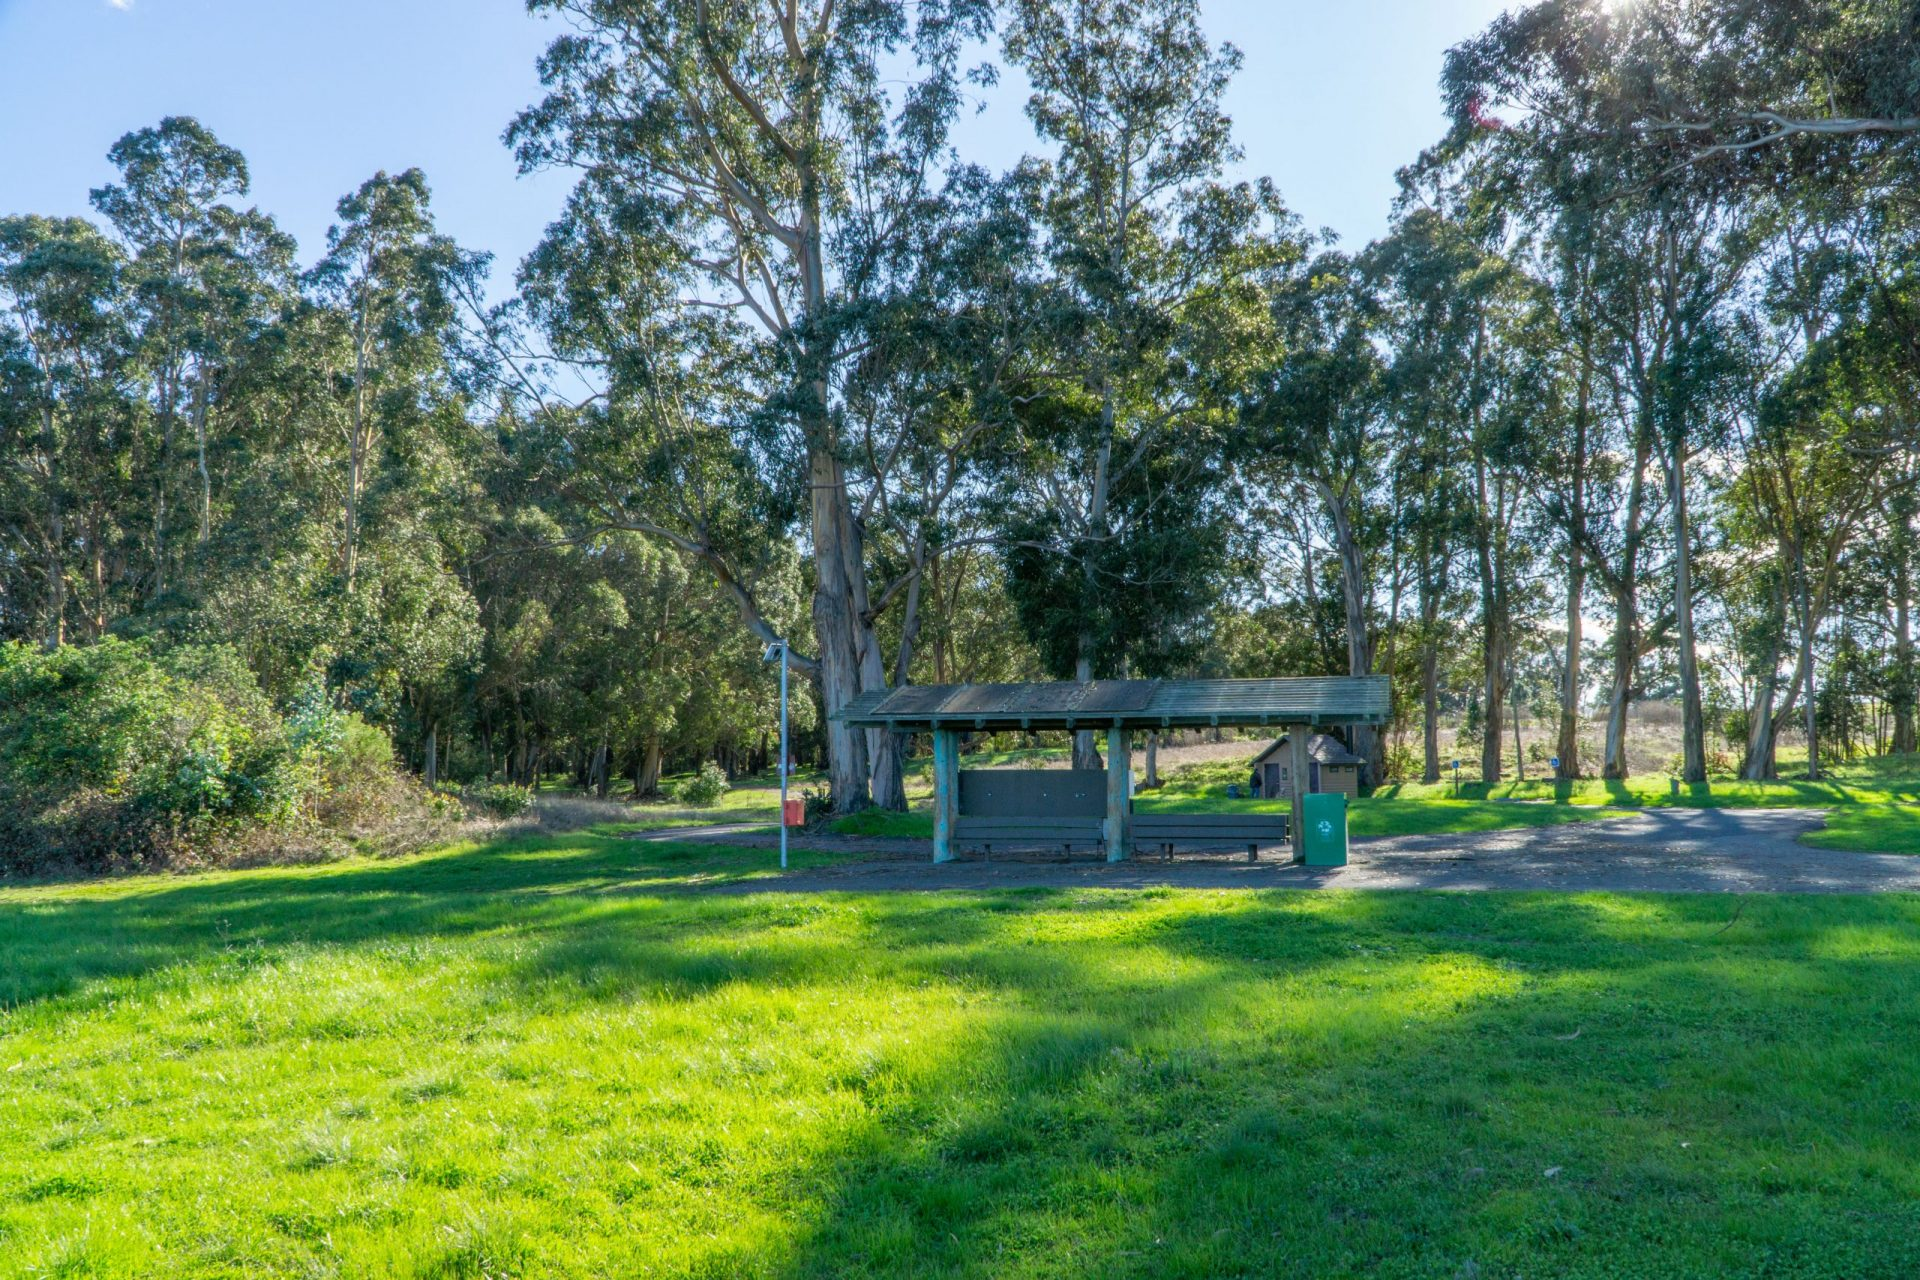 Kiosk with green grass and trees